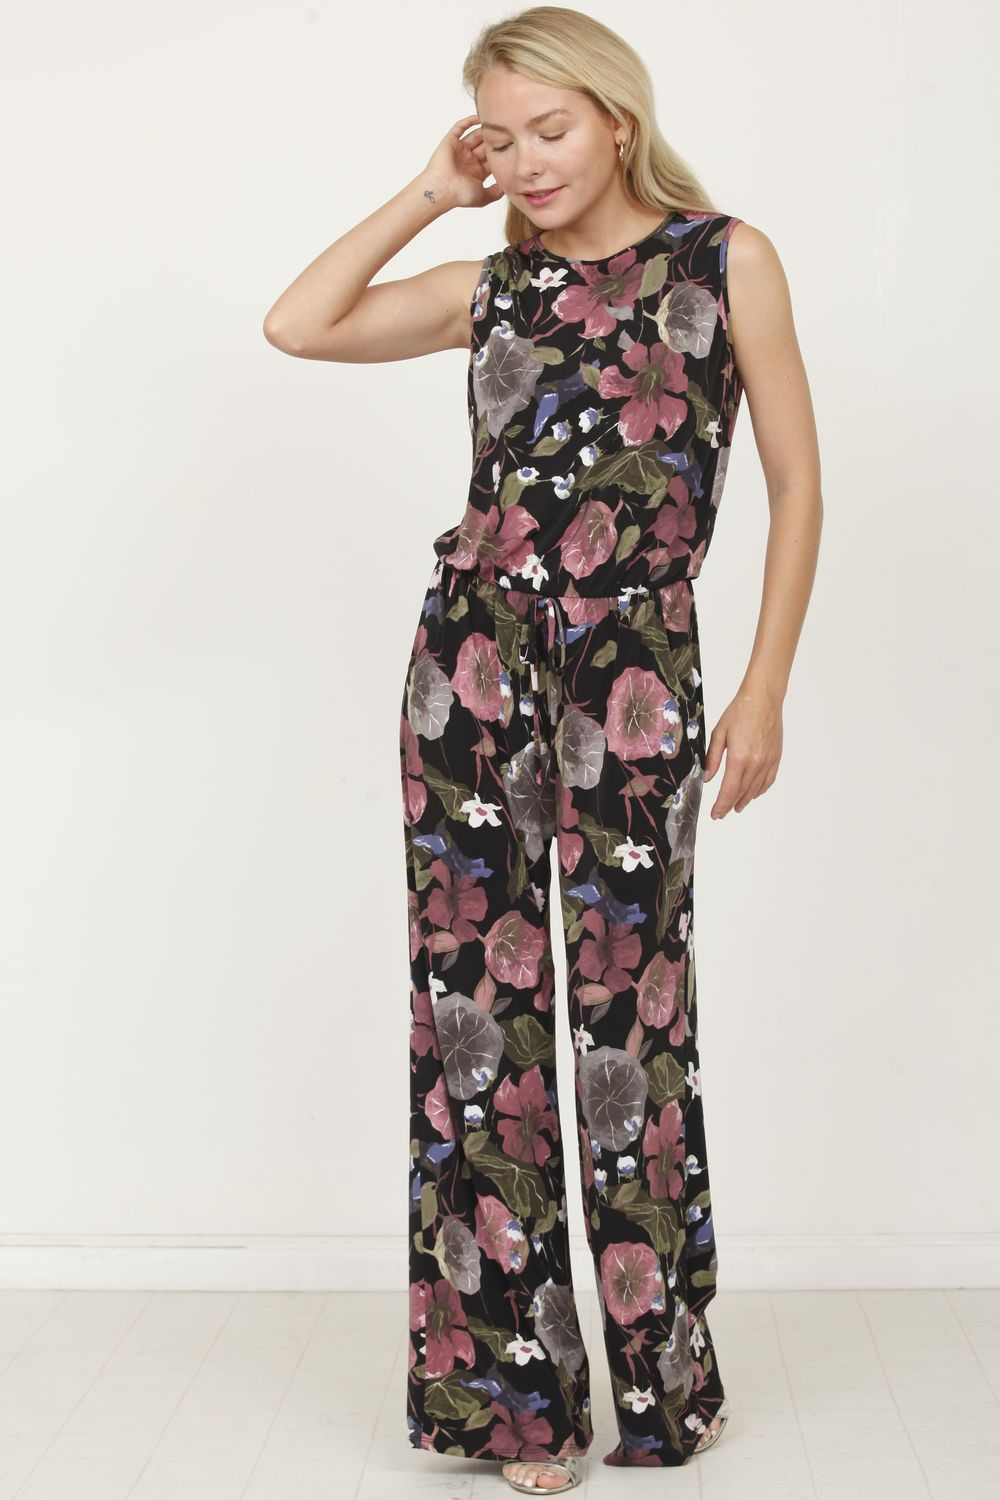 Black & Dark Pink Floral Sleeveless Jumpsuit